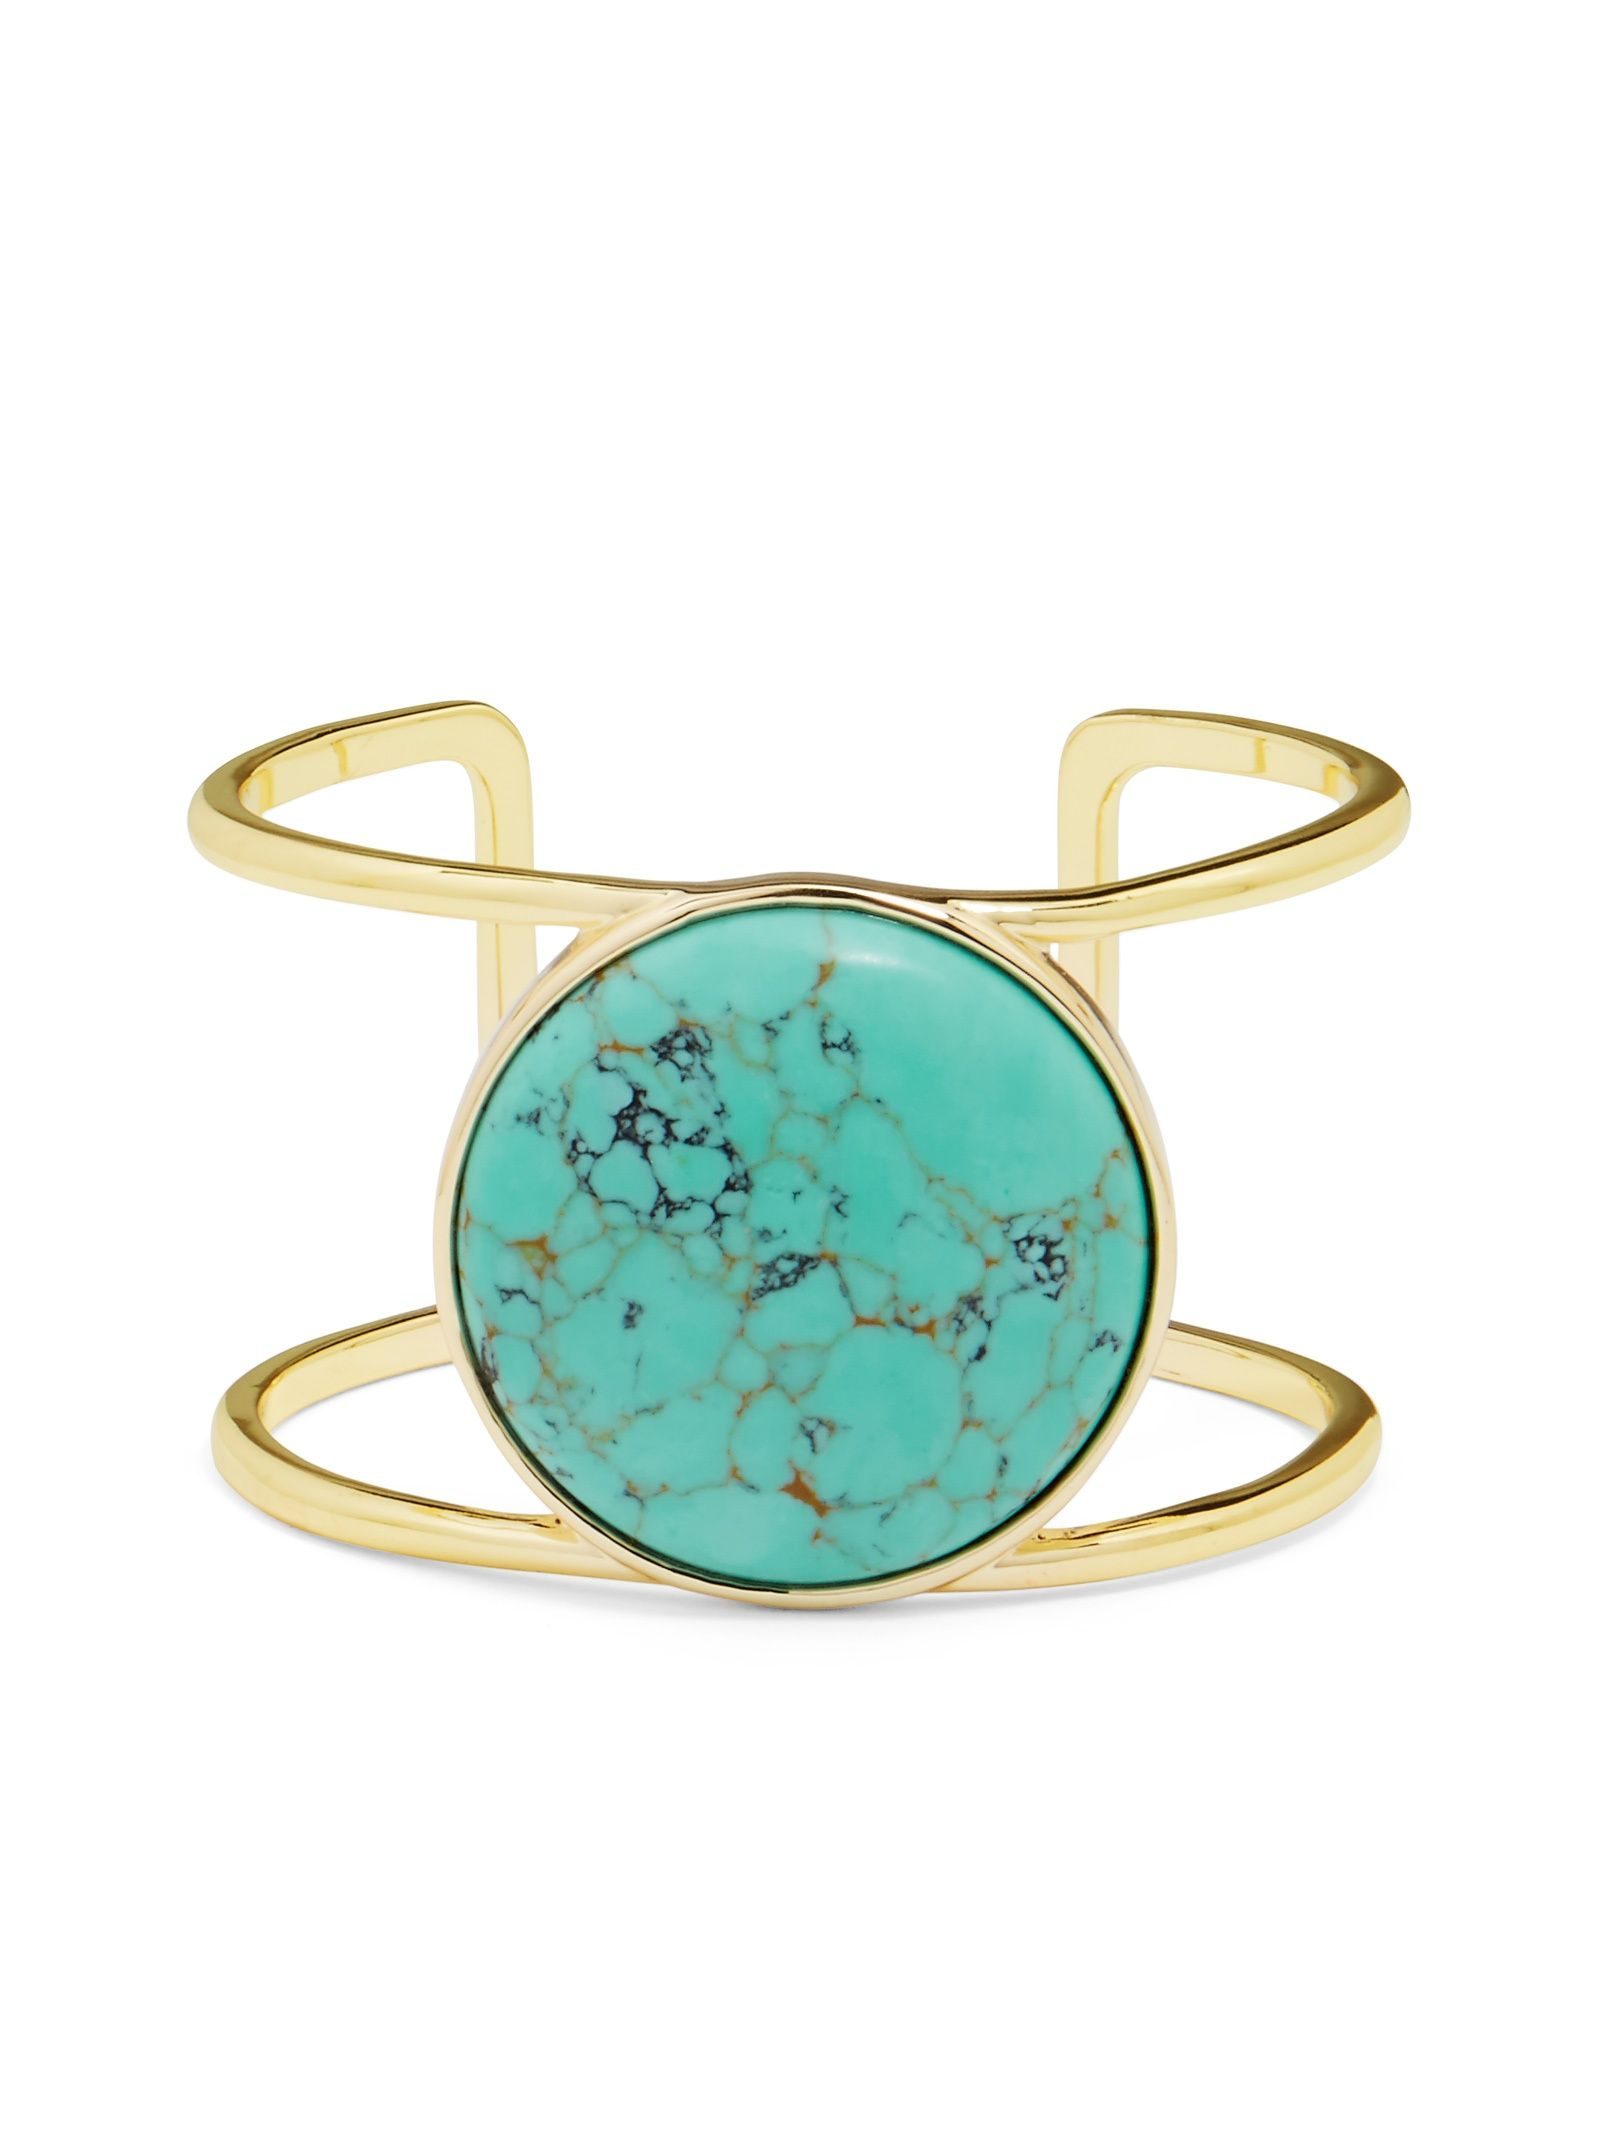 Monique cuff bracelet designs turquoise stone and bohemian